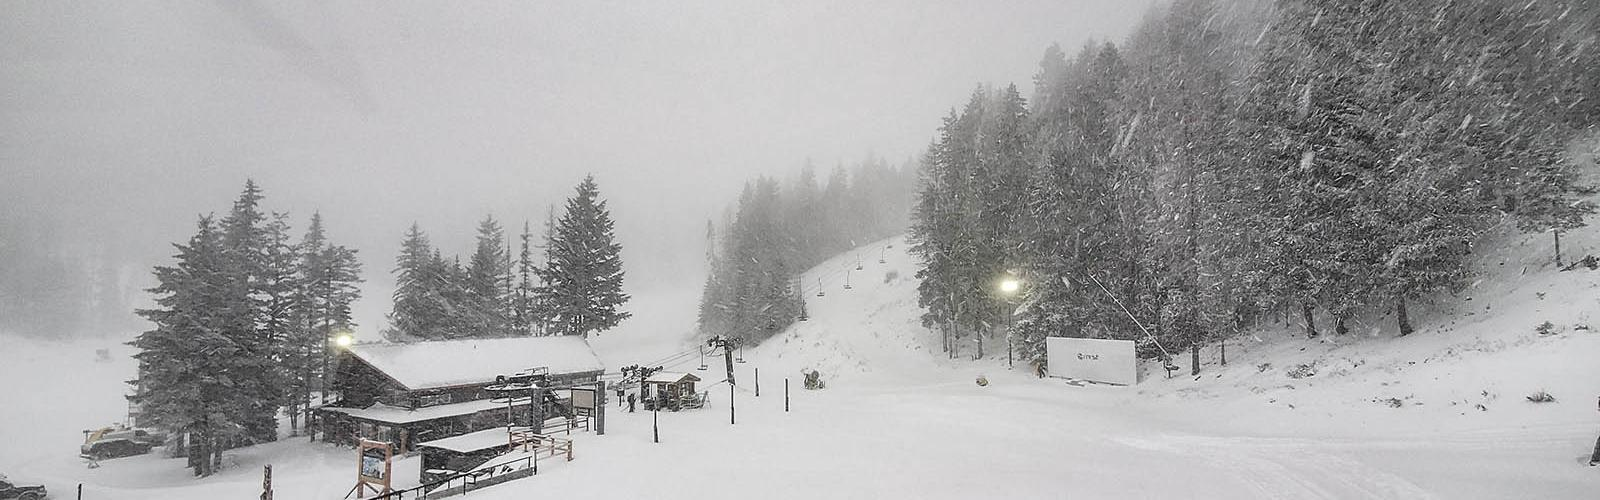 Mission Ridge Base Area covered in snow with snow falling